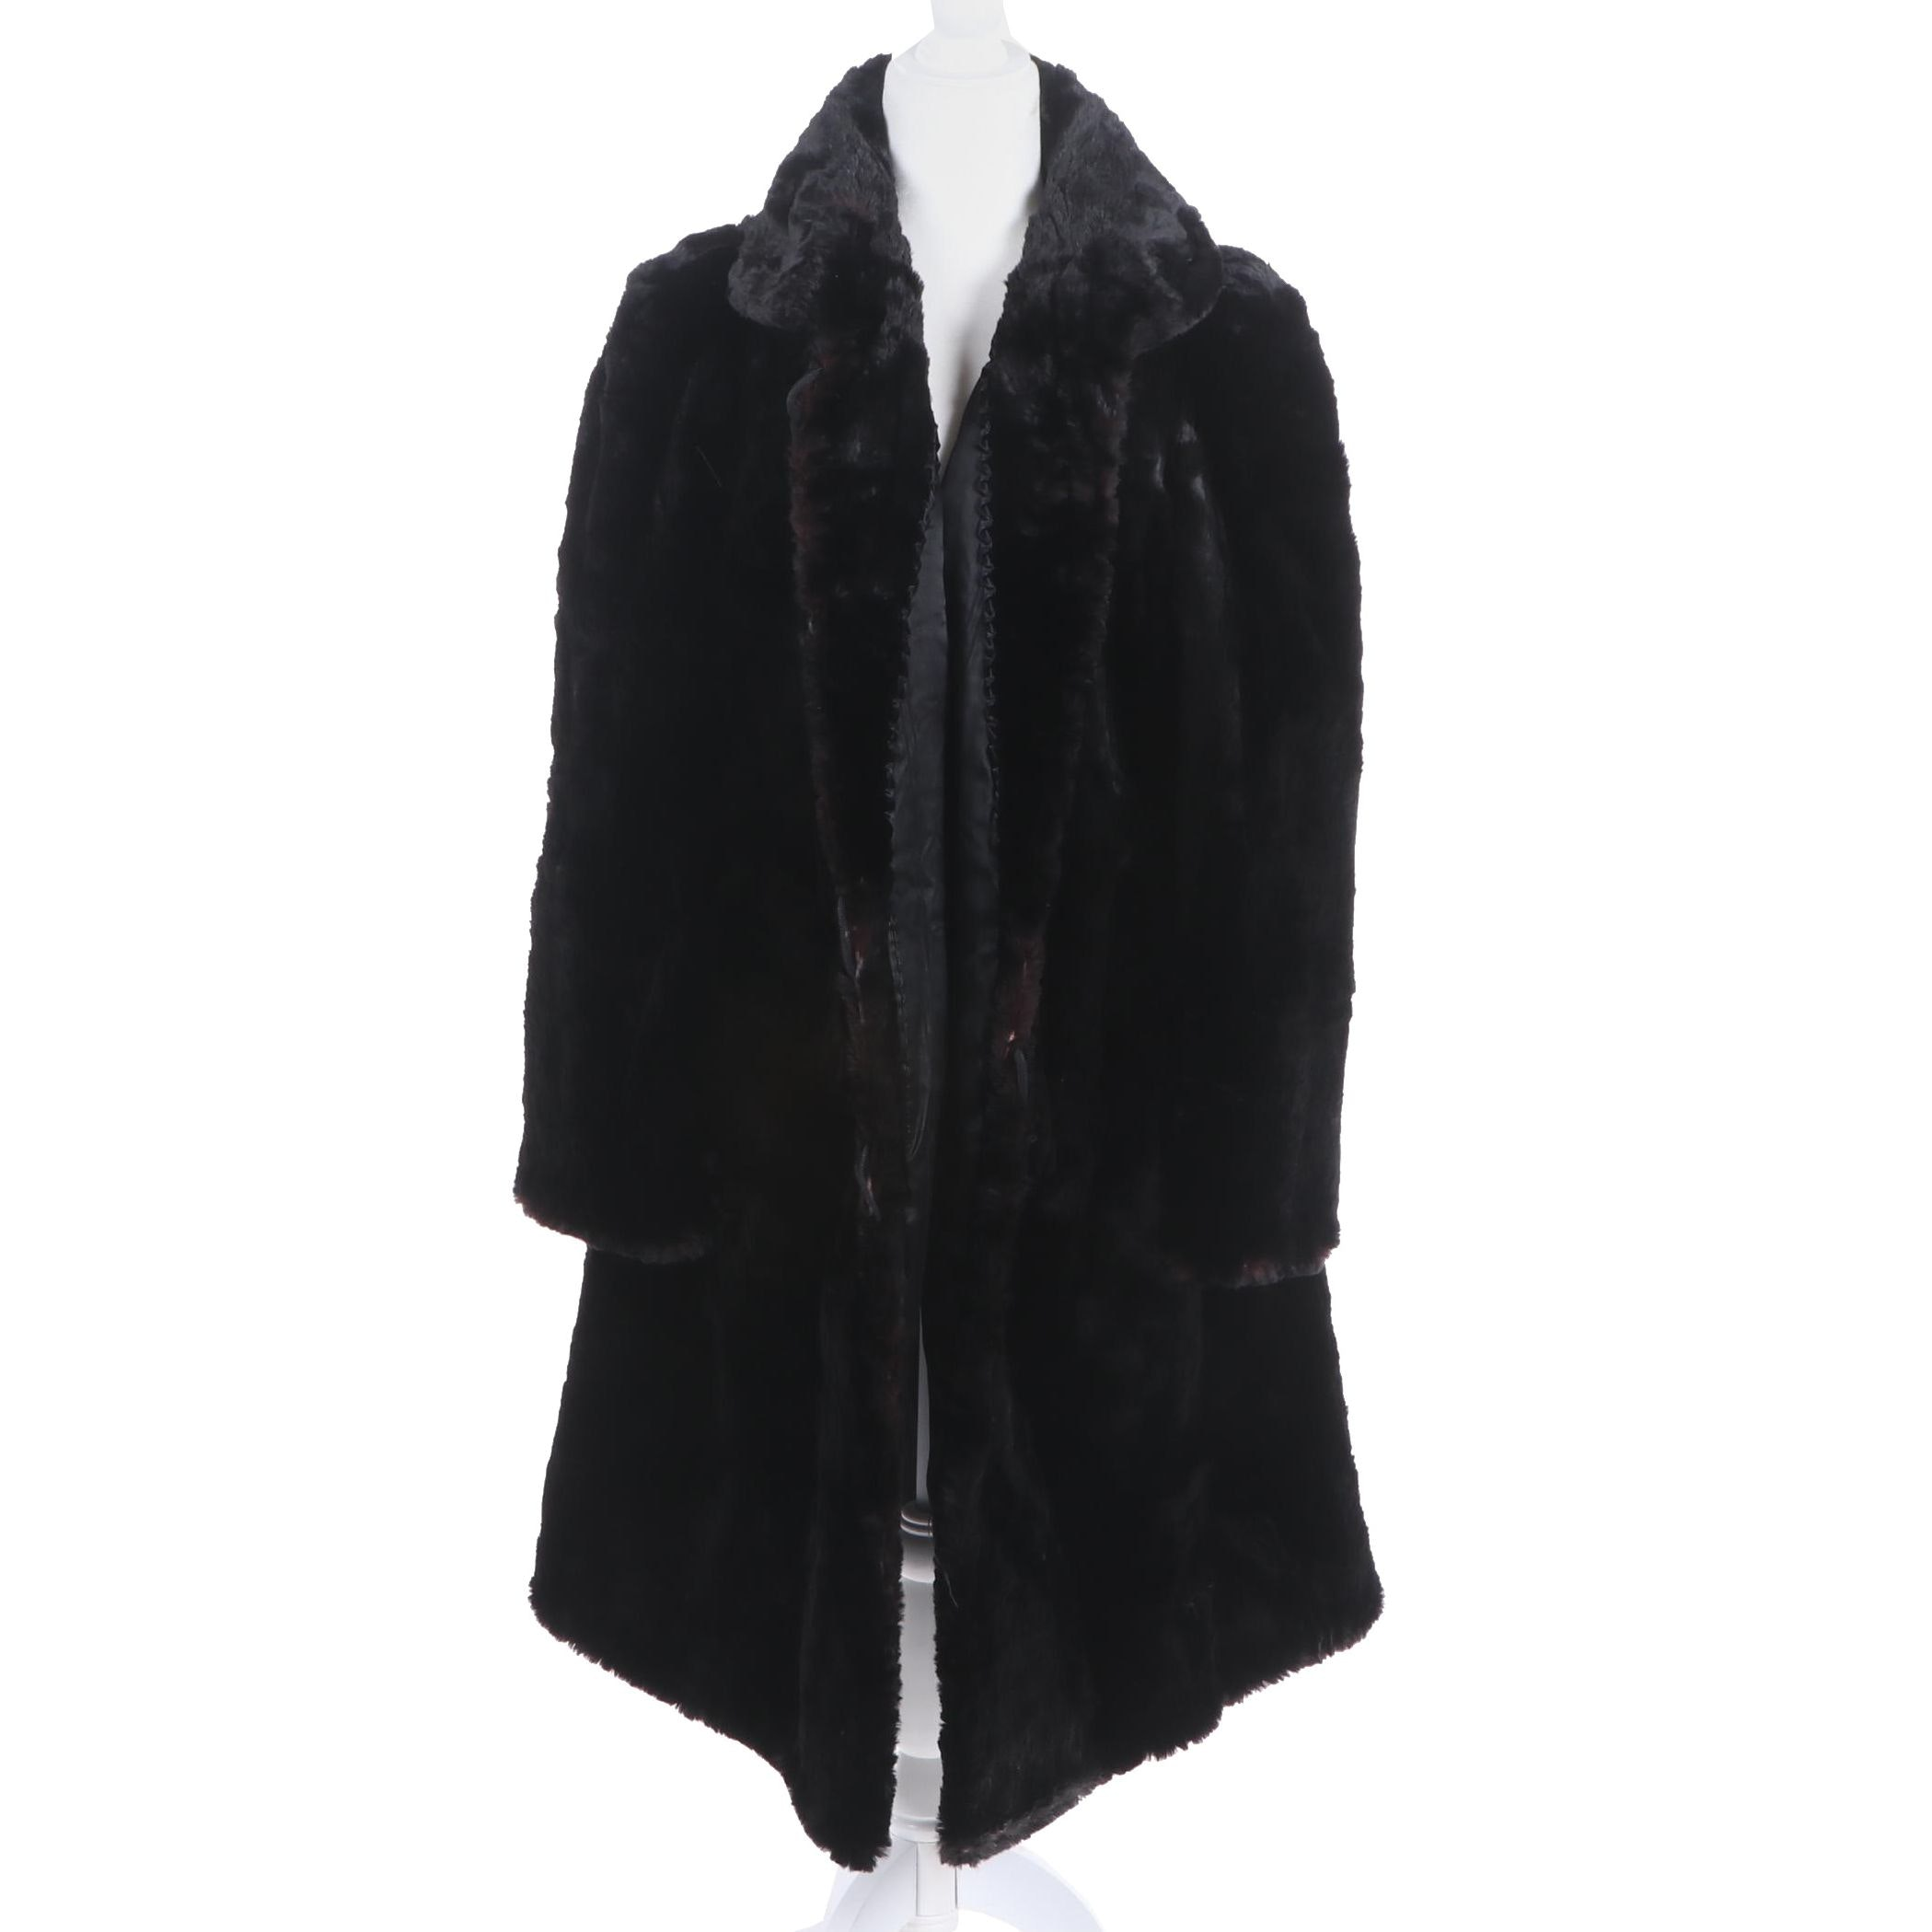 Women's Dyed Black Sheared Beaver Fur Coat, Vintage